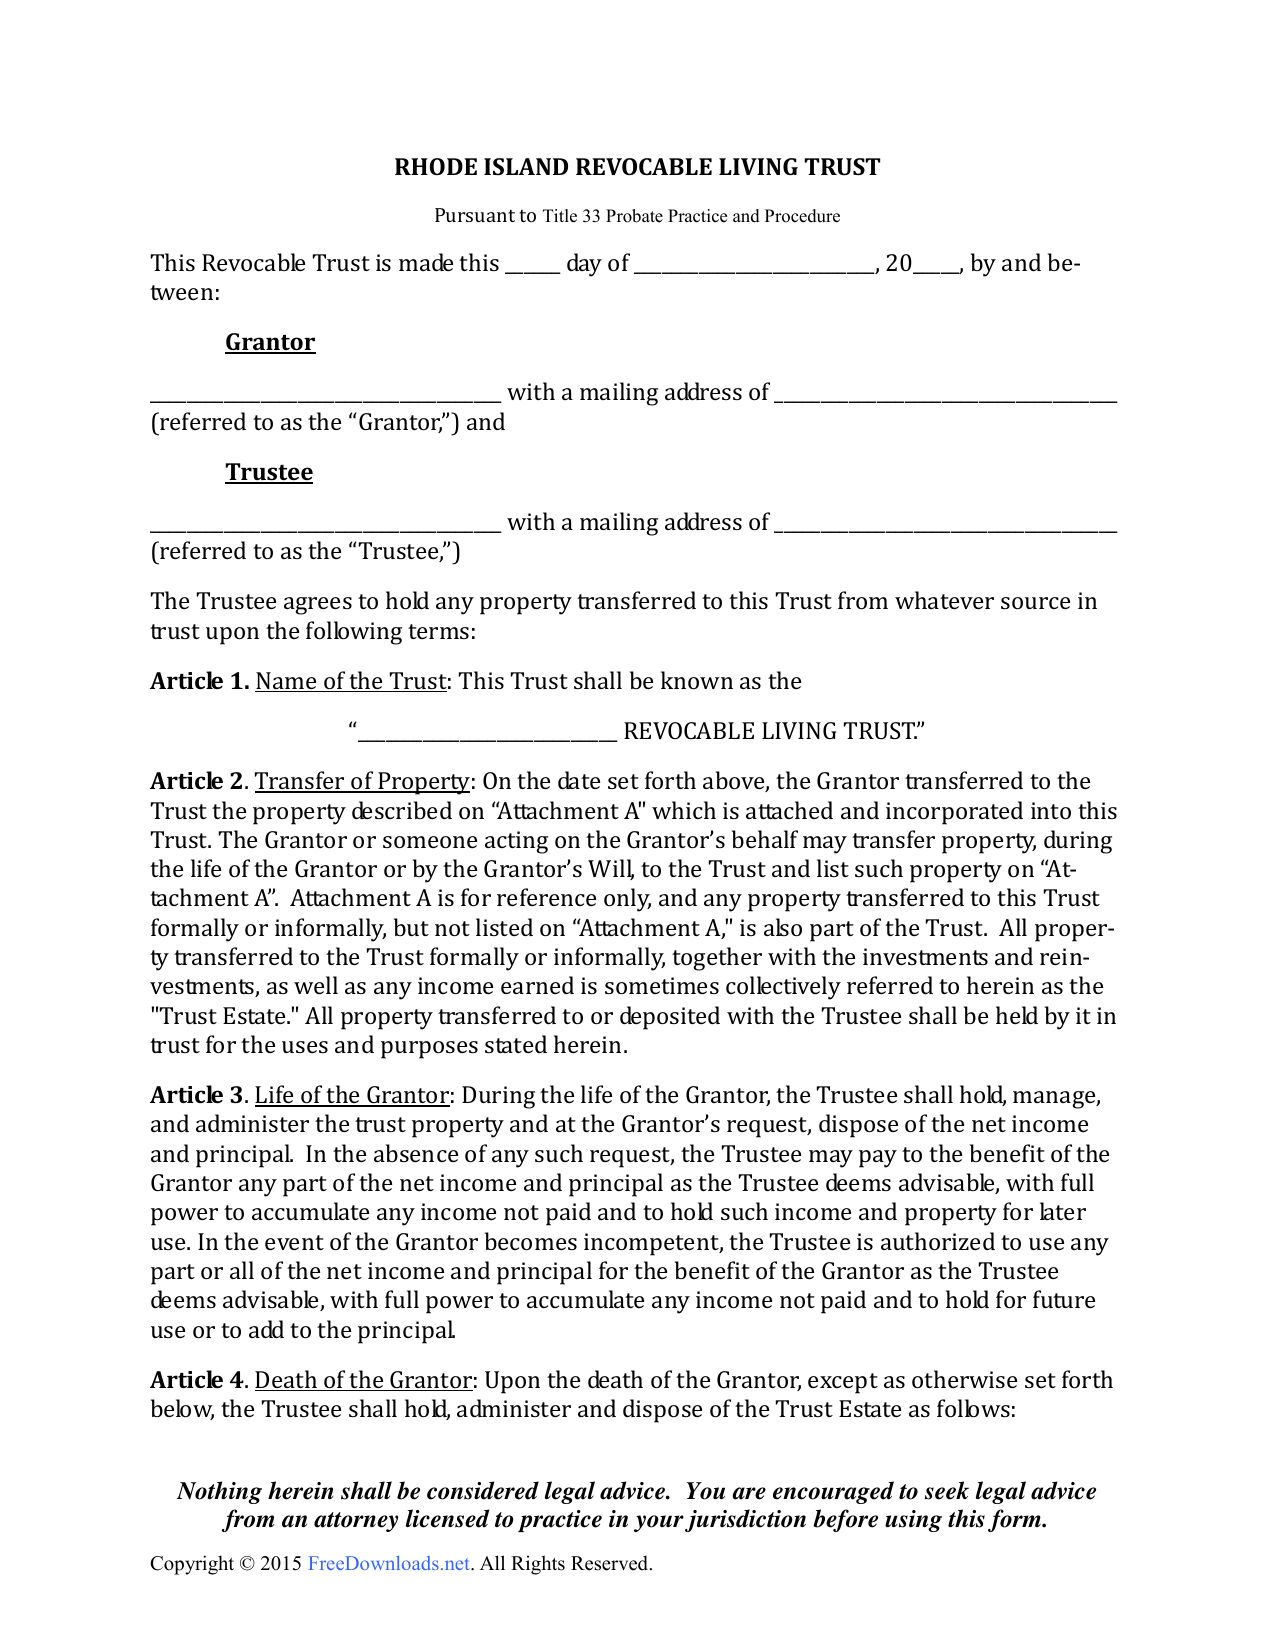 download rhode island revocable living trust form | pdf | rtf | word